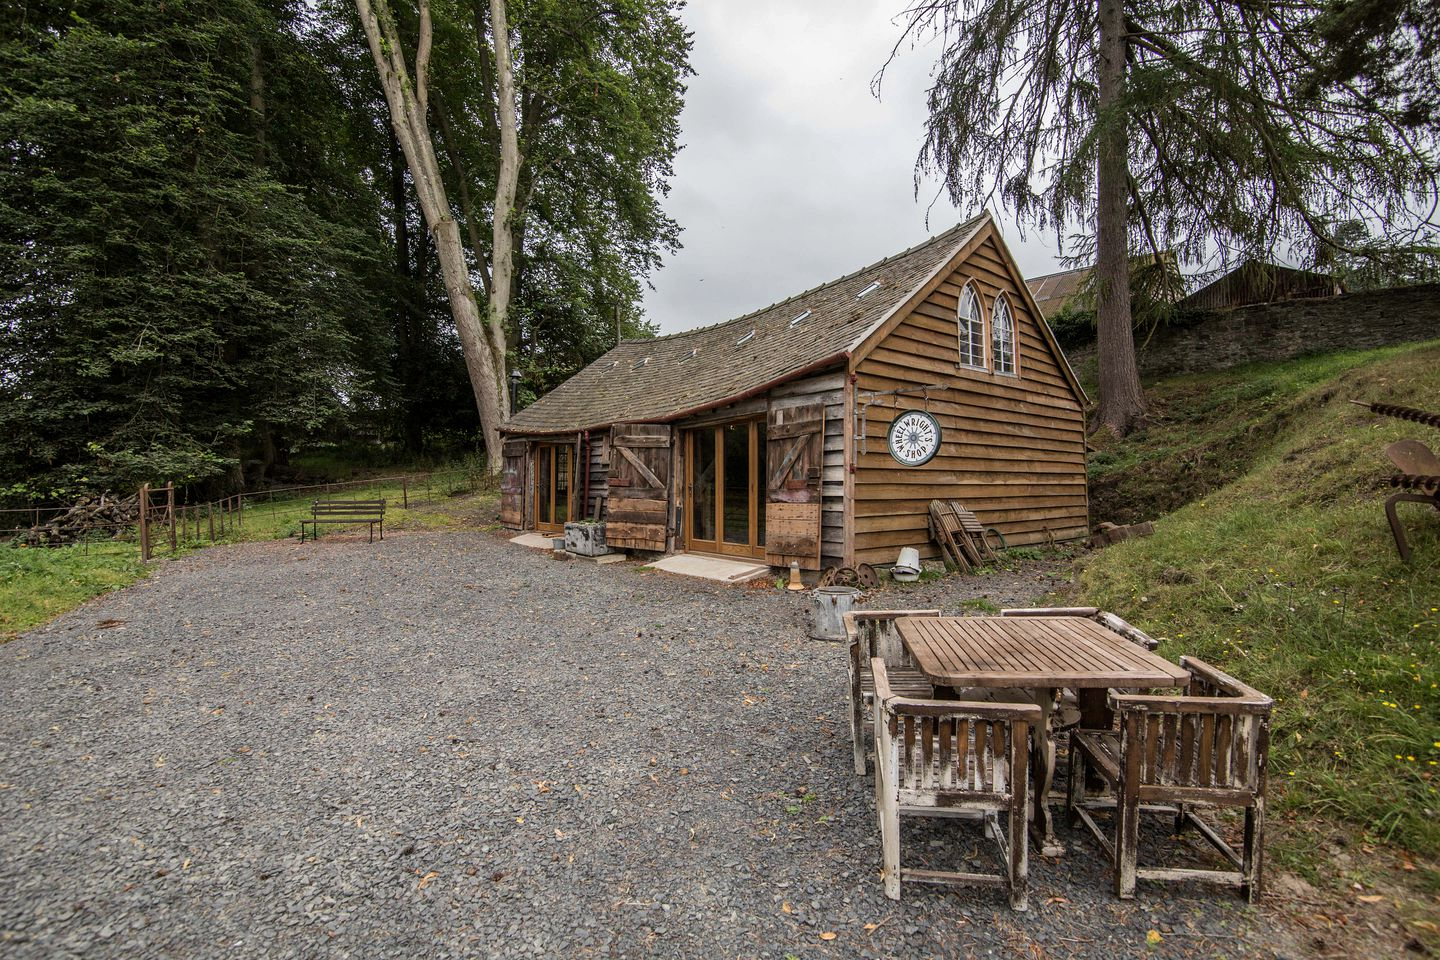 Cabins (Shropshire, England, United Kingdom)